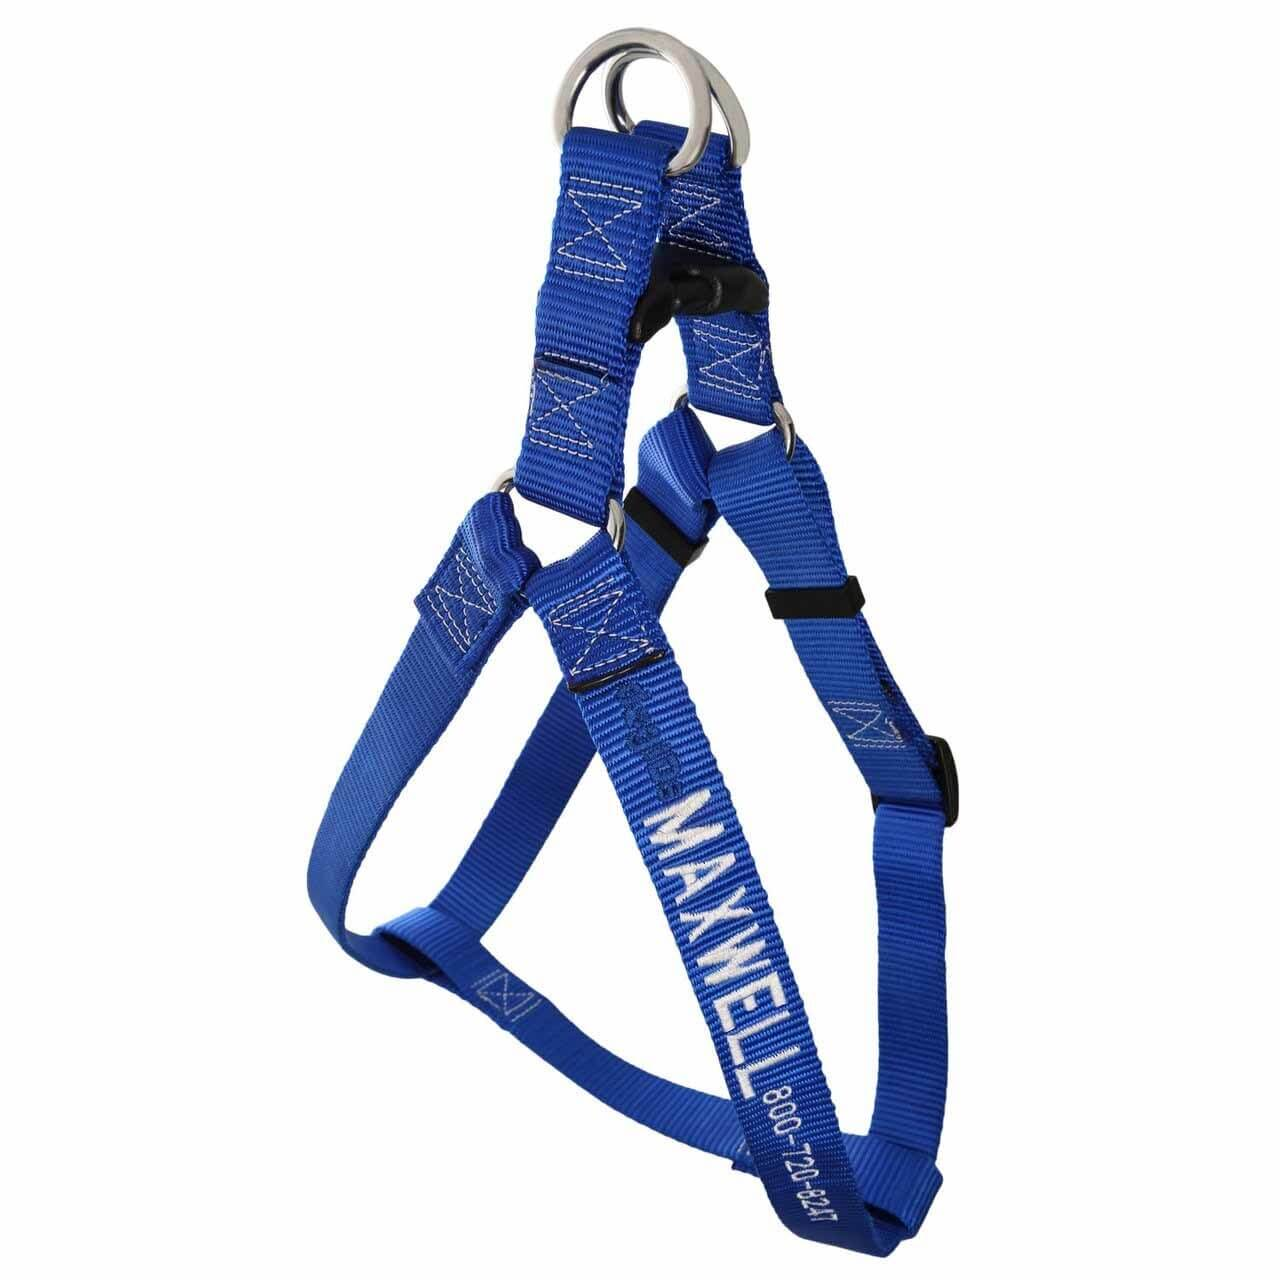 Embroidered Nylon Step-In Dog Harness